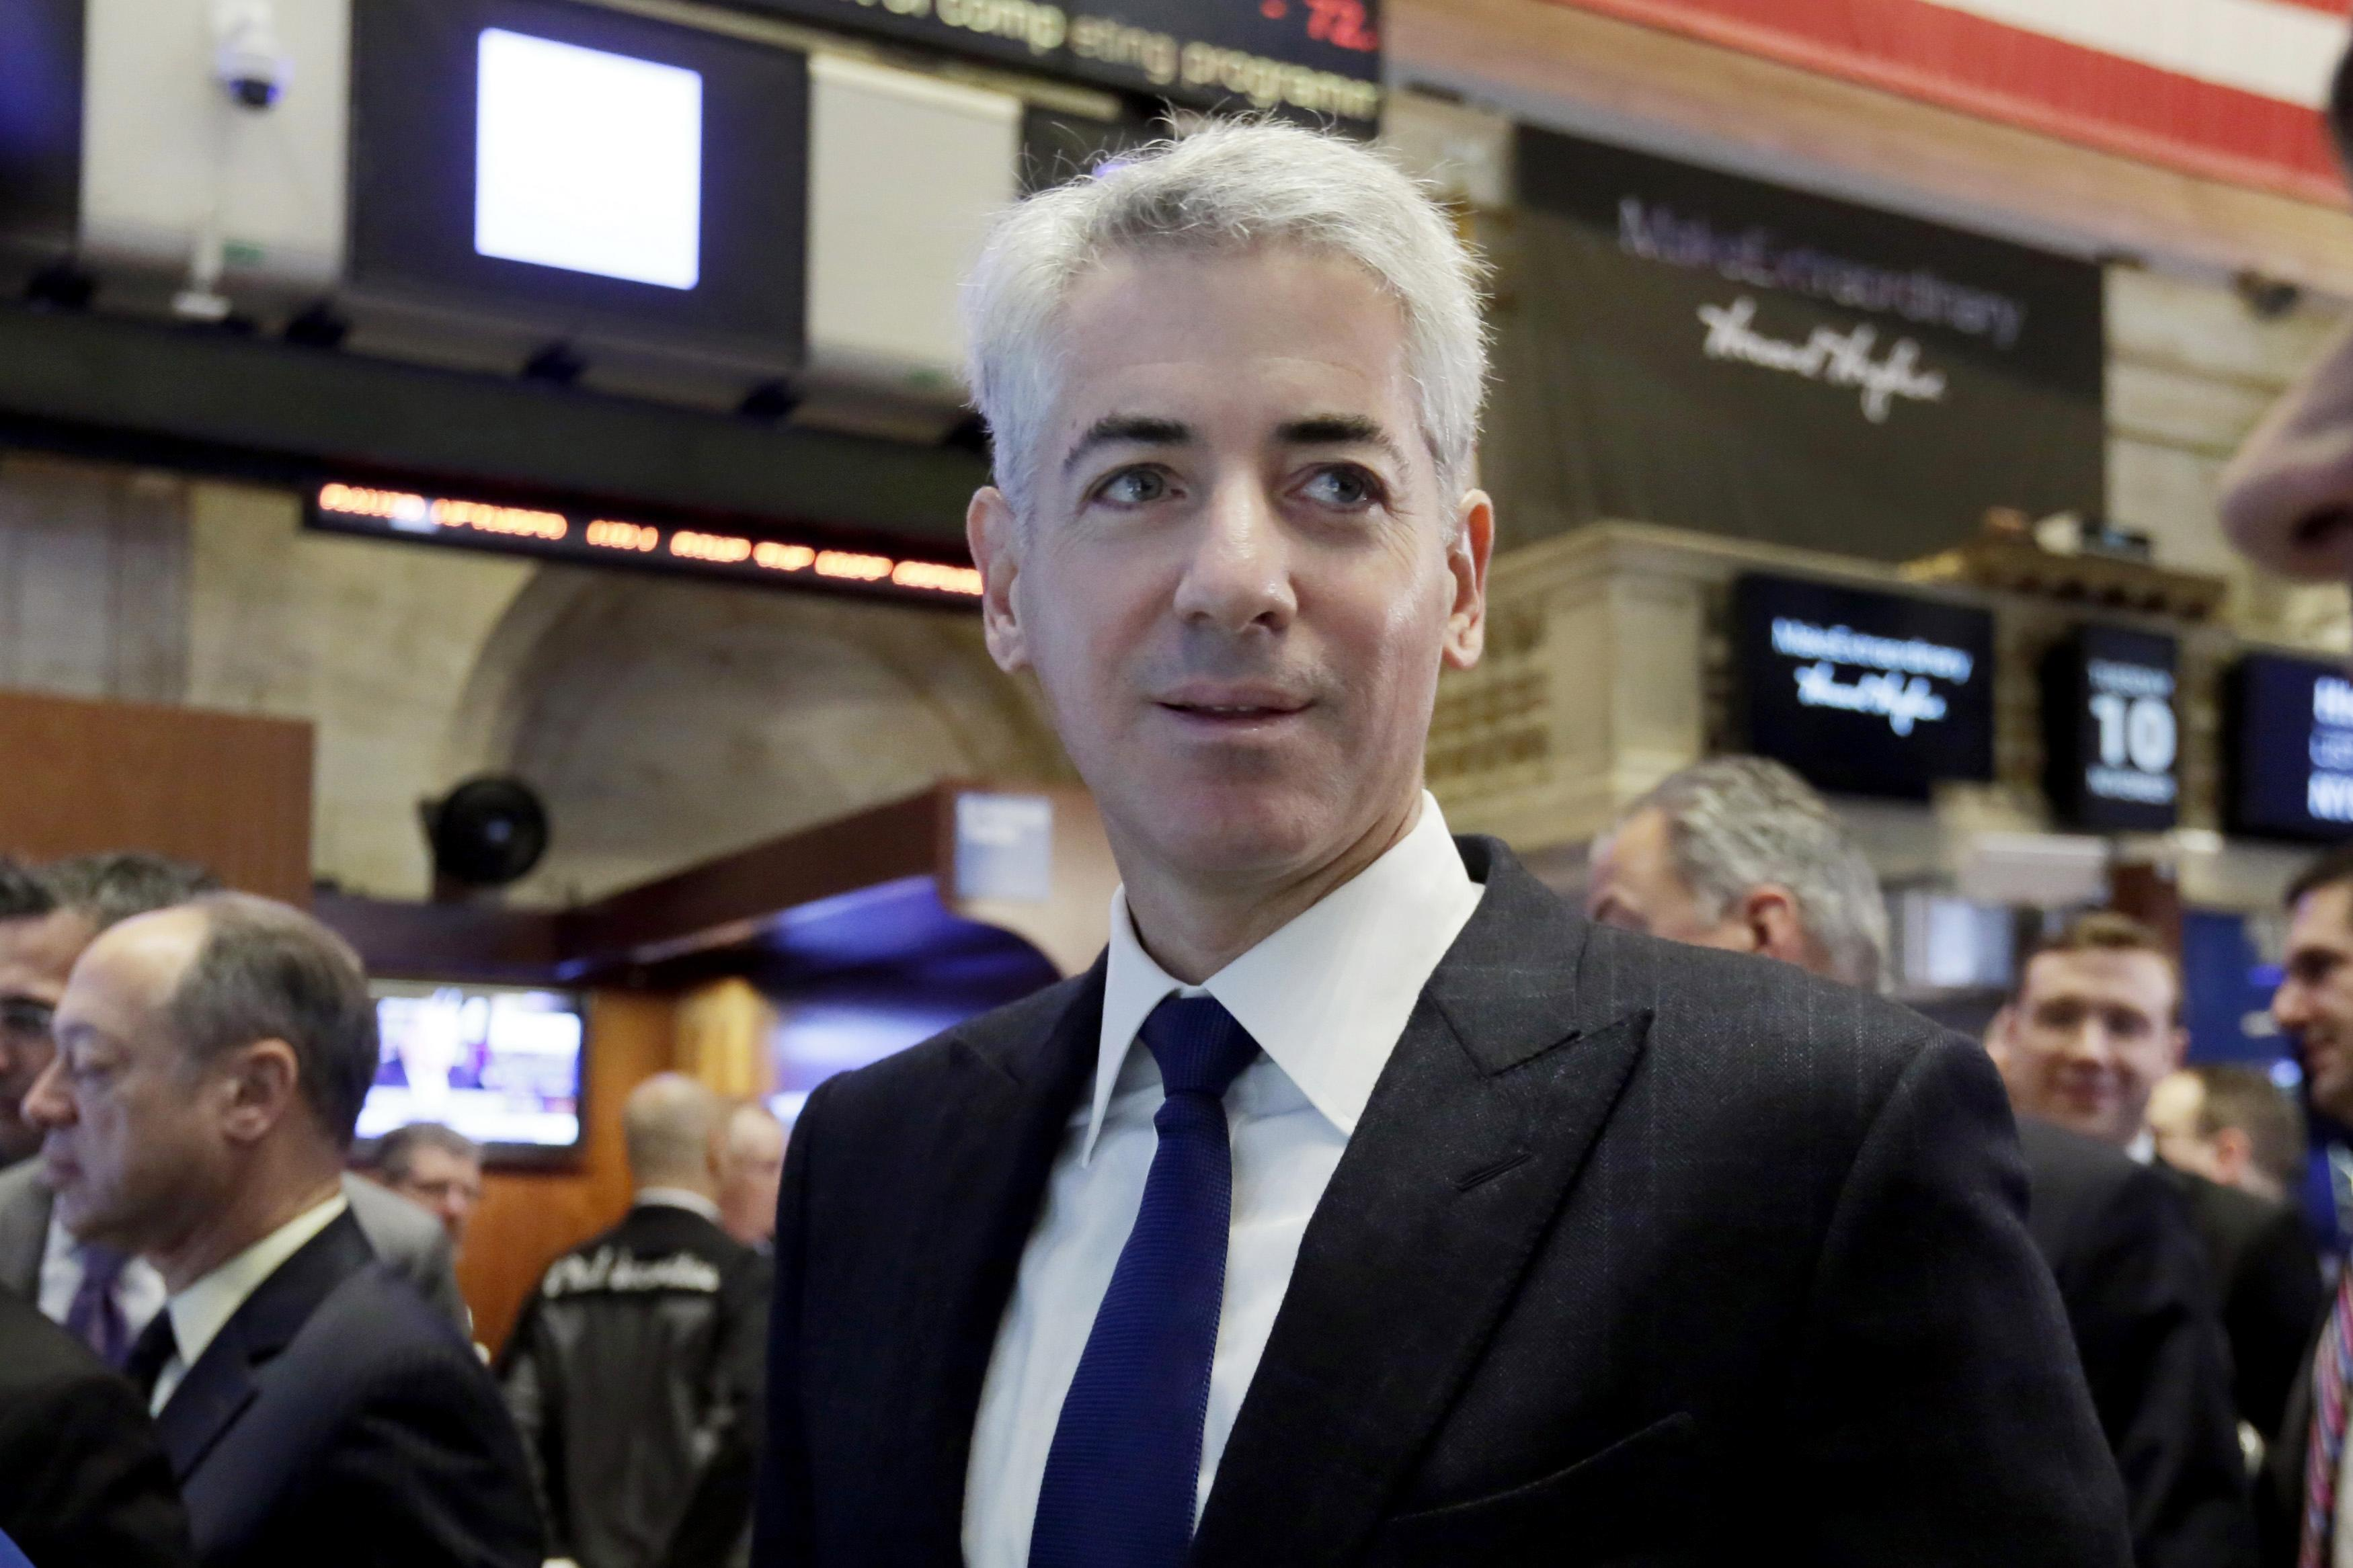 Eat with Bill Ackman, and help a charity: Lunch with billionaire investor hits the auction block